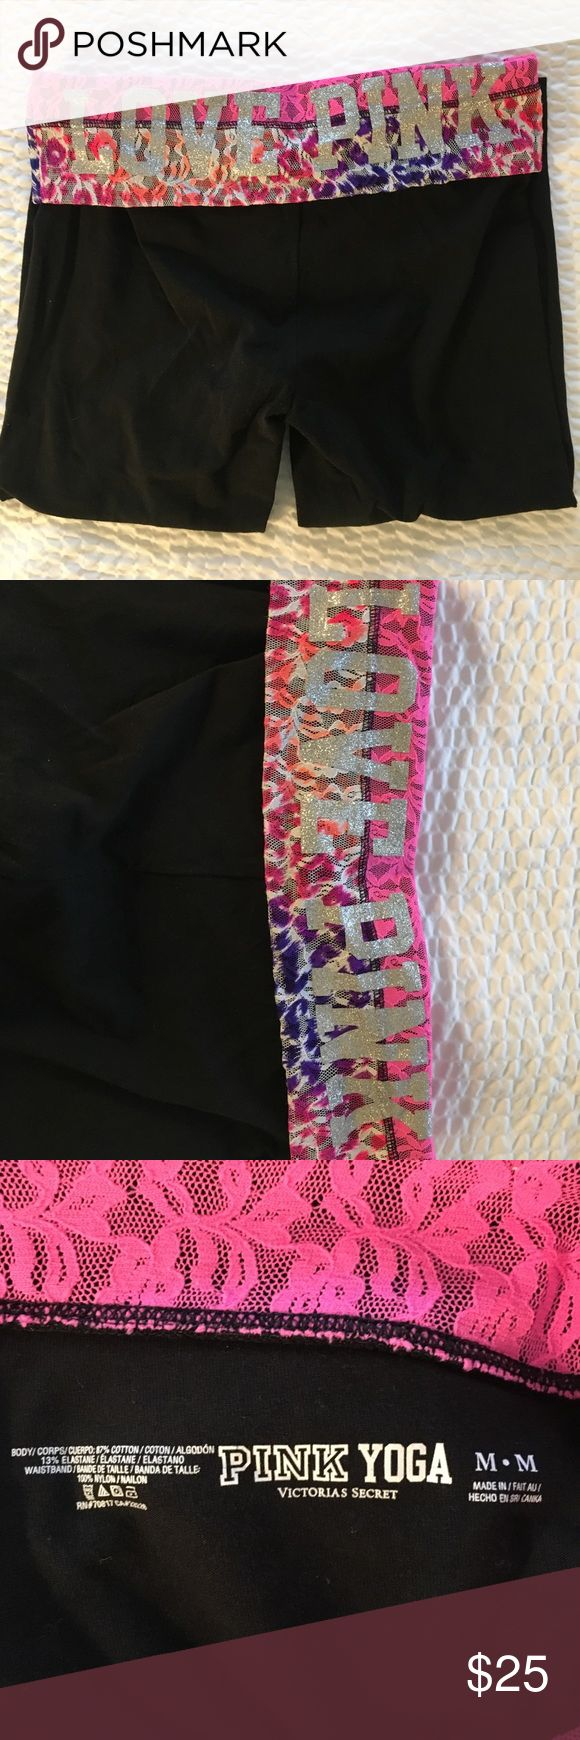 💙SALE❤️ Victoria Secret Pink Yoga Capris Victoria Secret Pink Yoga Capris. Super comfy and great to wear around all year. Colorful waist band. EUC PINK Victoria's Secret Pants Capris